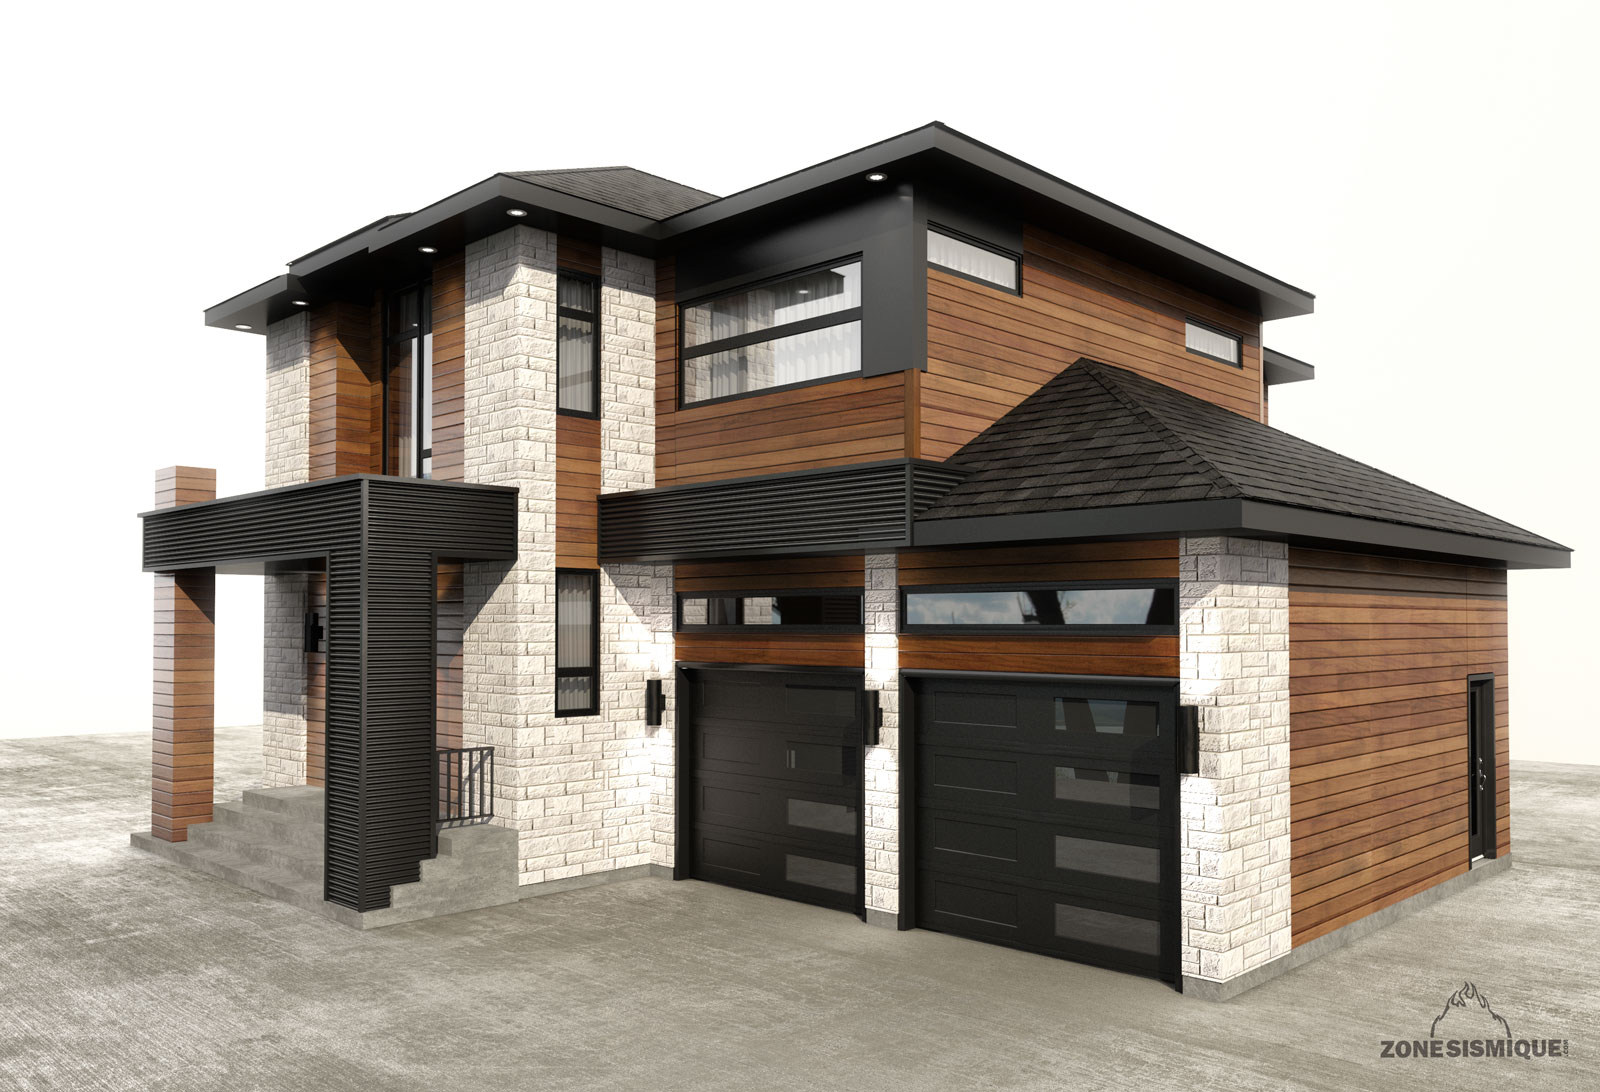 Zone sismique contruction salette maison moderne garage - Construction de maison 3d ...